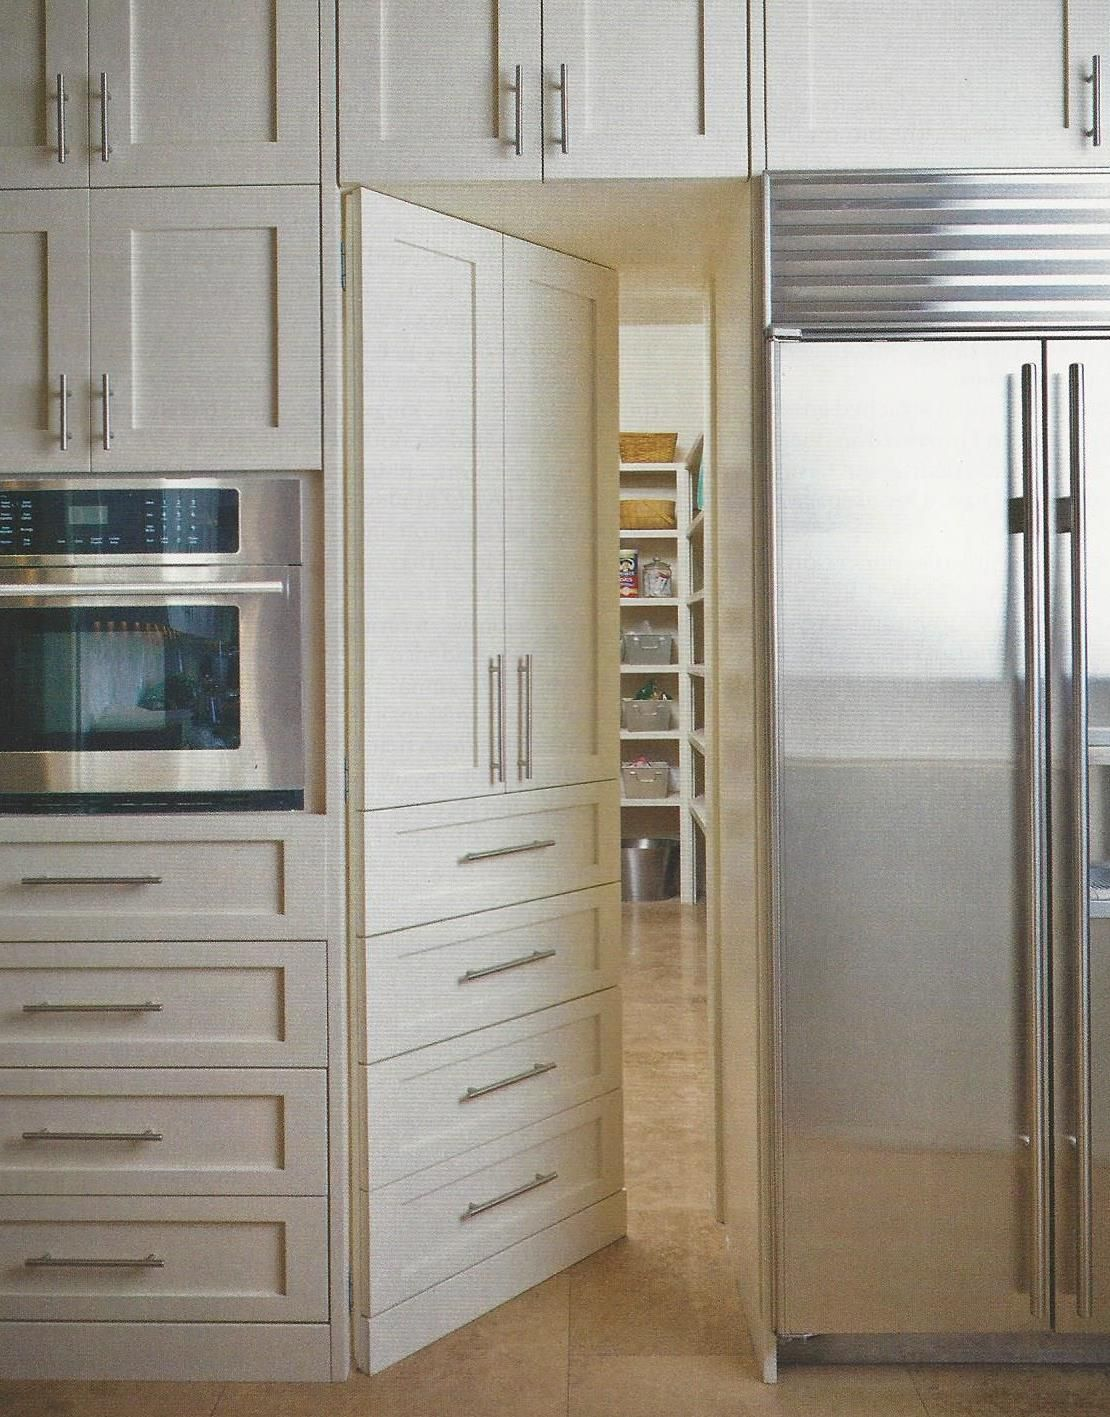 build kitchen cabinets hotels with in orlando door to pantry hidden cabinetry heart of the home doors